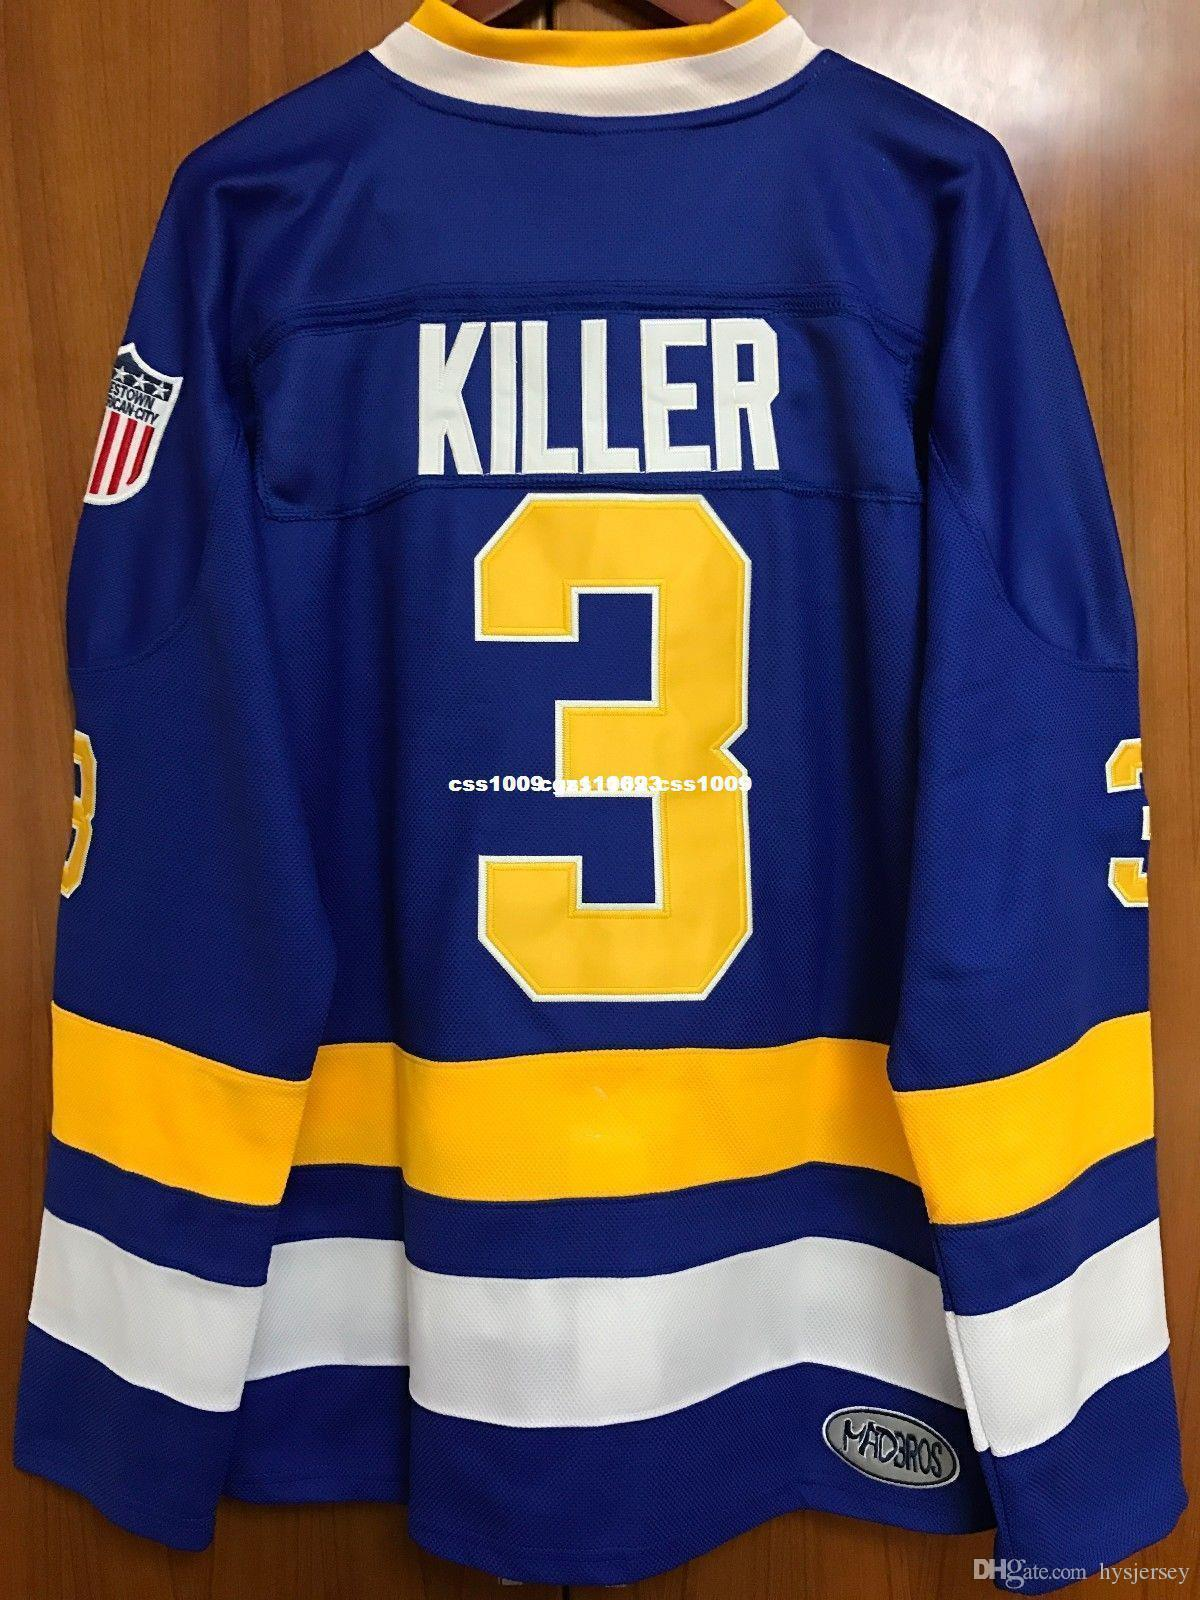 2019 Cheap Custom Slap Shot Dave Killer Carlson  3 Ice Hockey Jersey  Charlestown Chiefs Stitched Customize Any Number Name MEN WOMEN YOUTH XS  5XL From ... 64b081da4e7